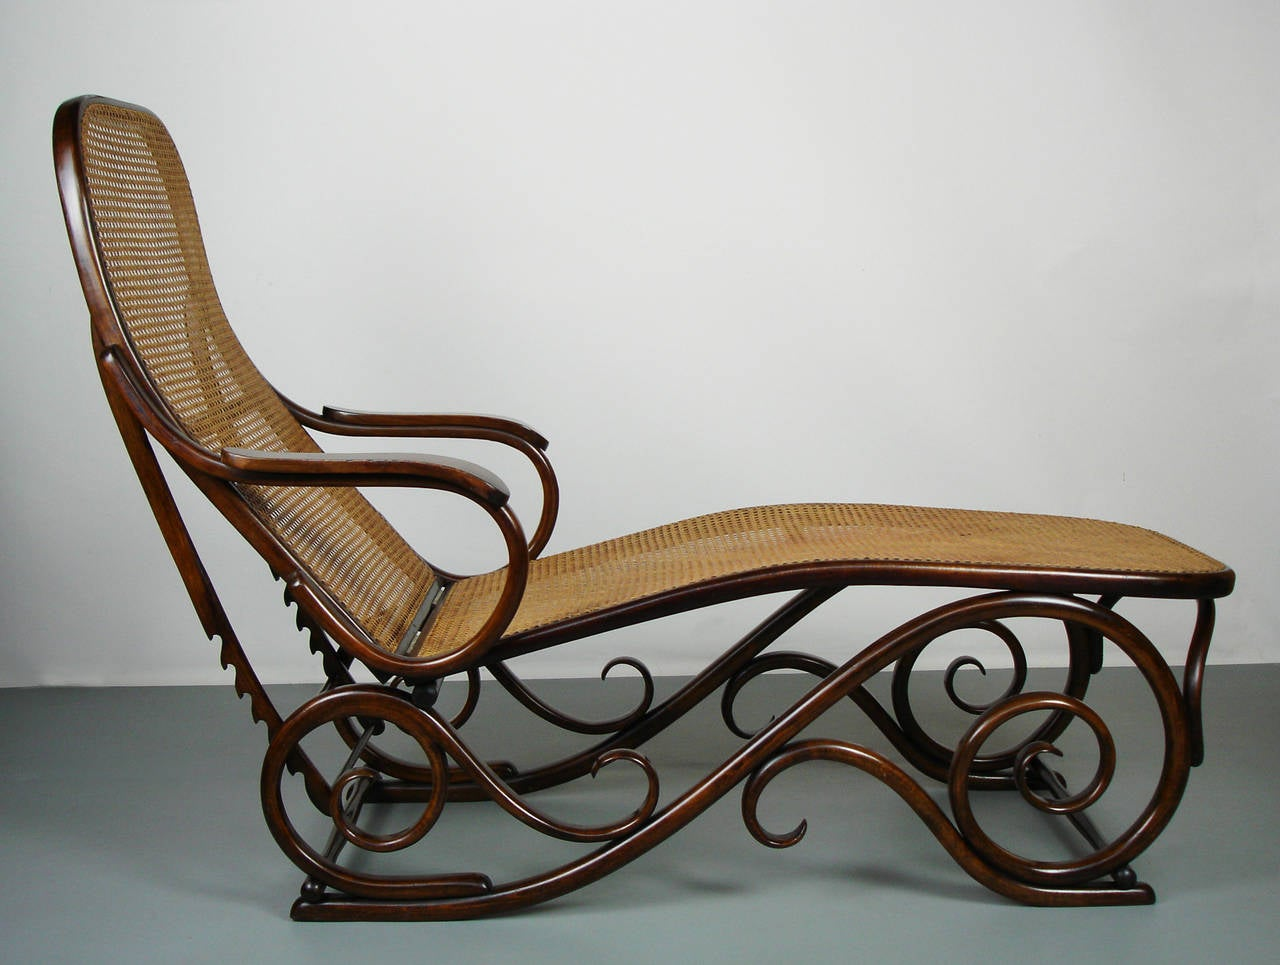 Bent wood chaise longue attributed to thonet at 1stdibs for Chaise bentwood